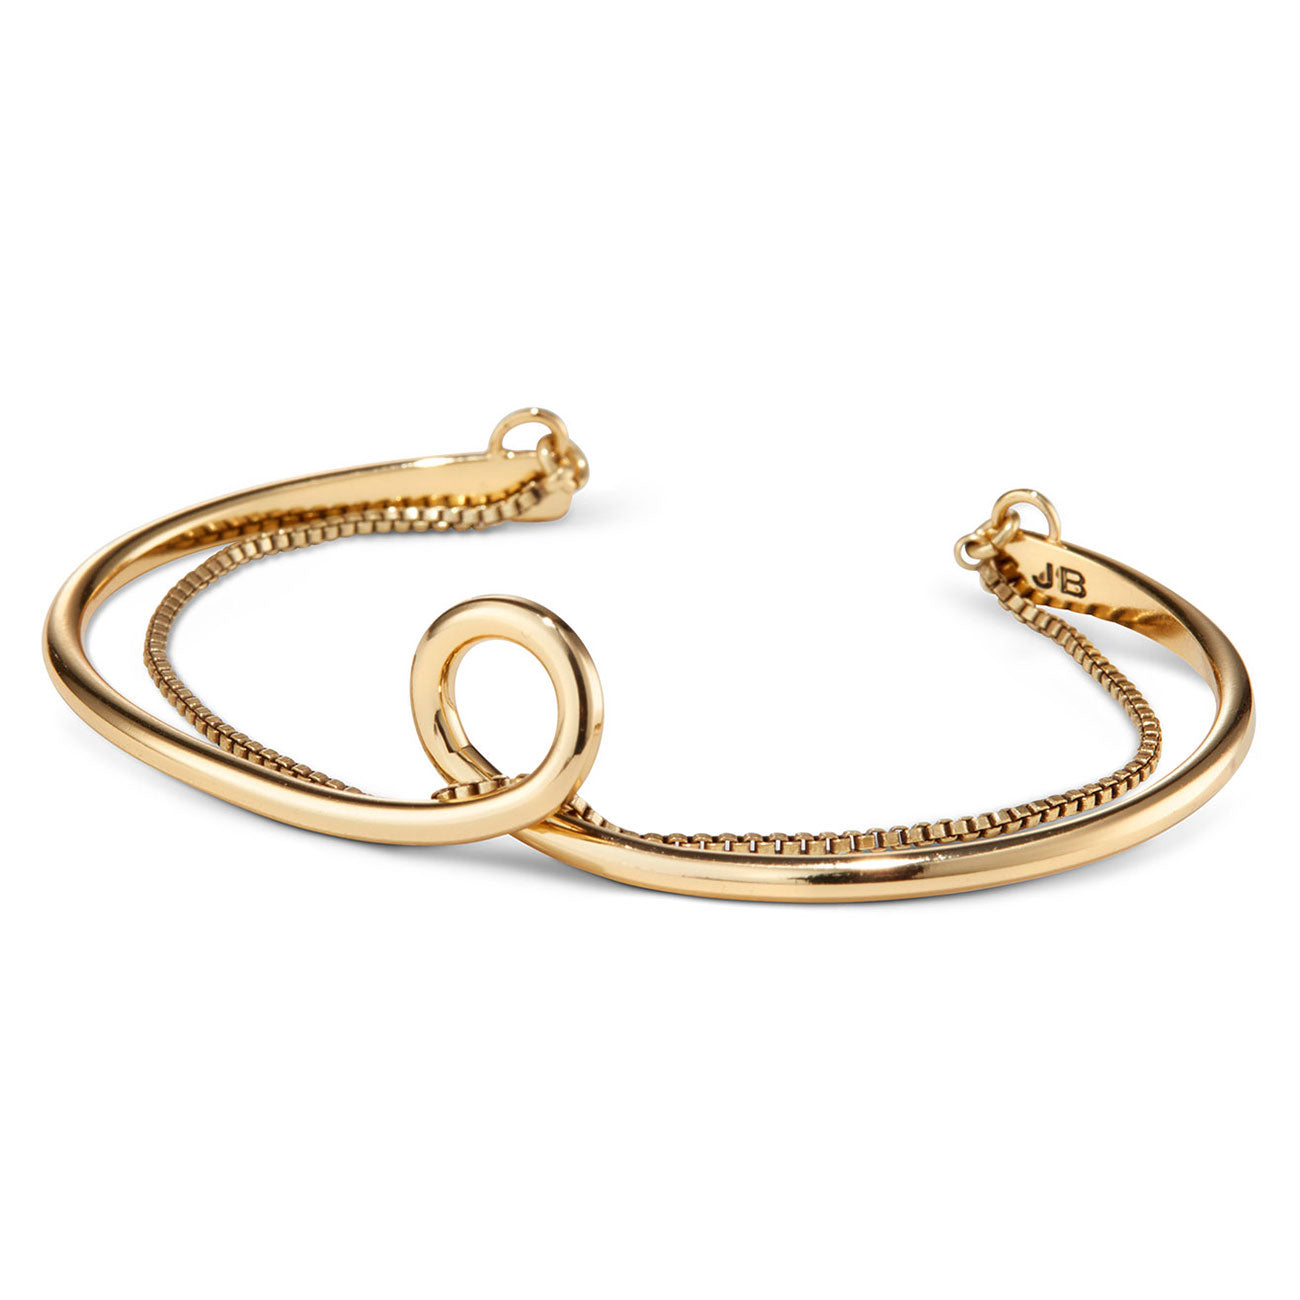 The Loop Cuff